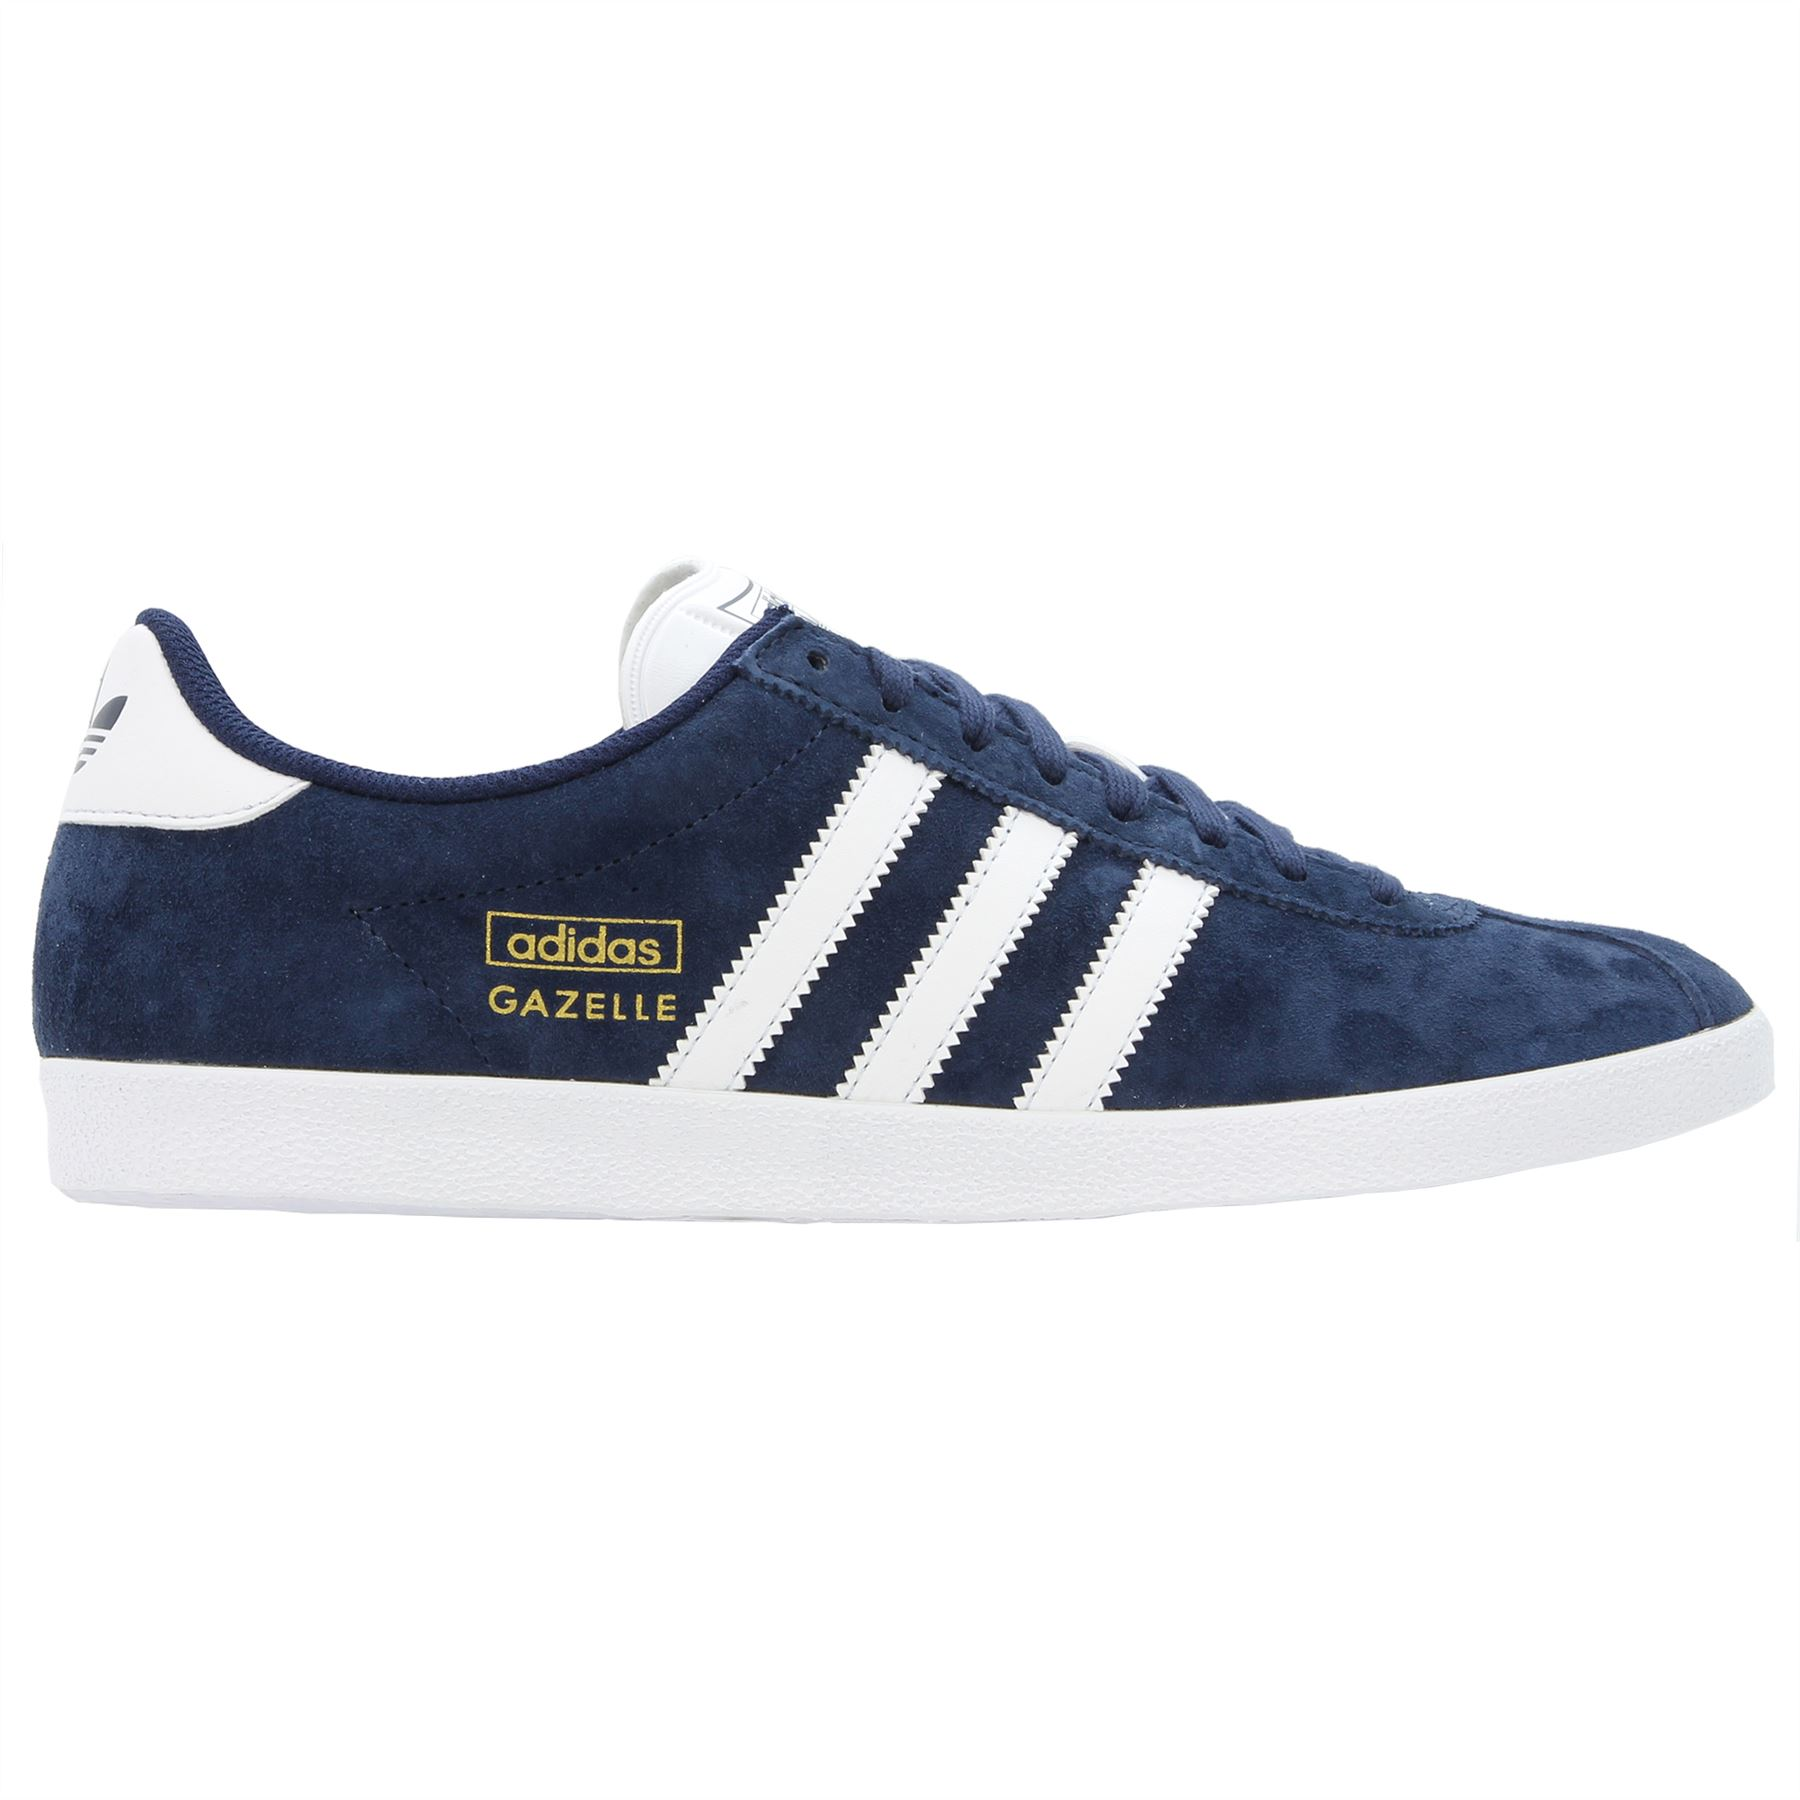 adidas-ORIGINALS-MEN-039-S-GAZELLE-TRAINERS-SIZE-